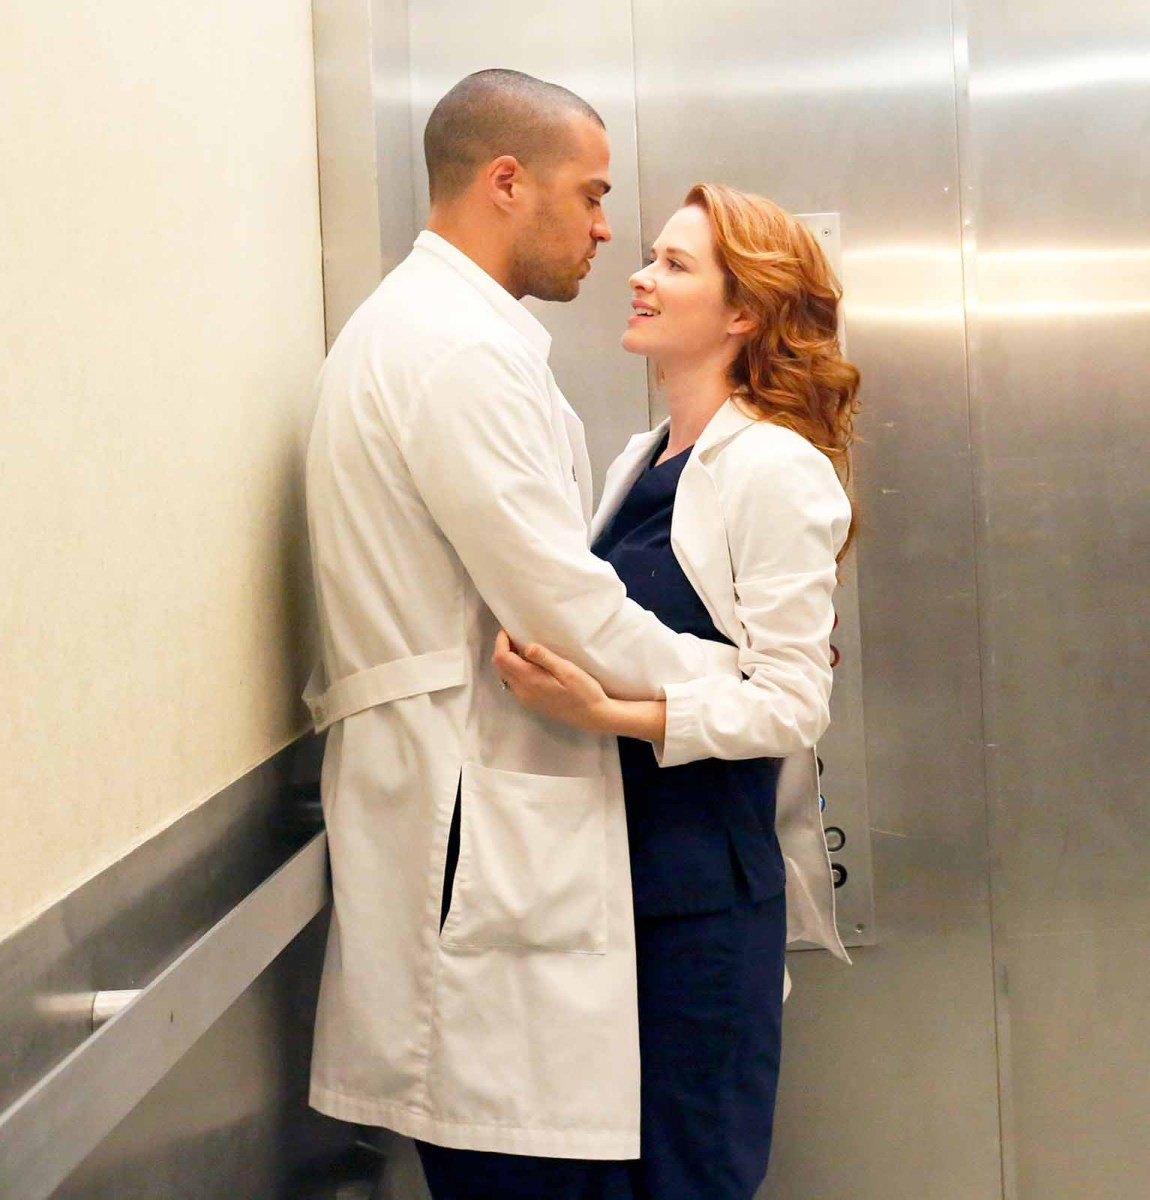 Season 17 of 'Gray's Anatomy' has seen the return of many iconic characters. Peek behind the scenes to see who else is coming back.